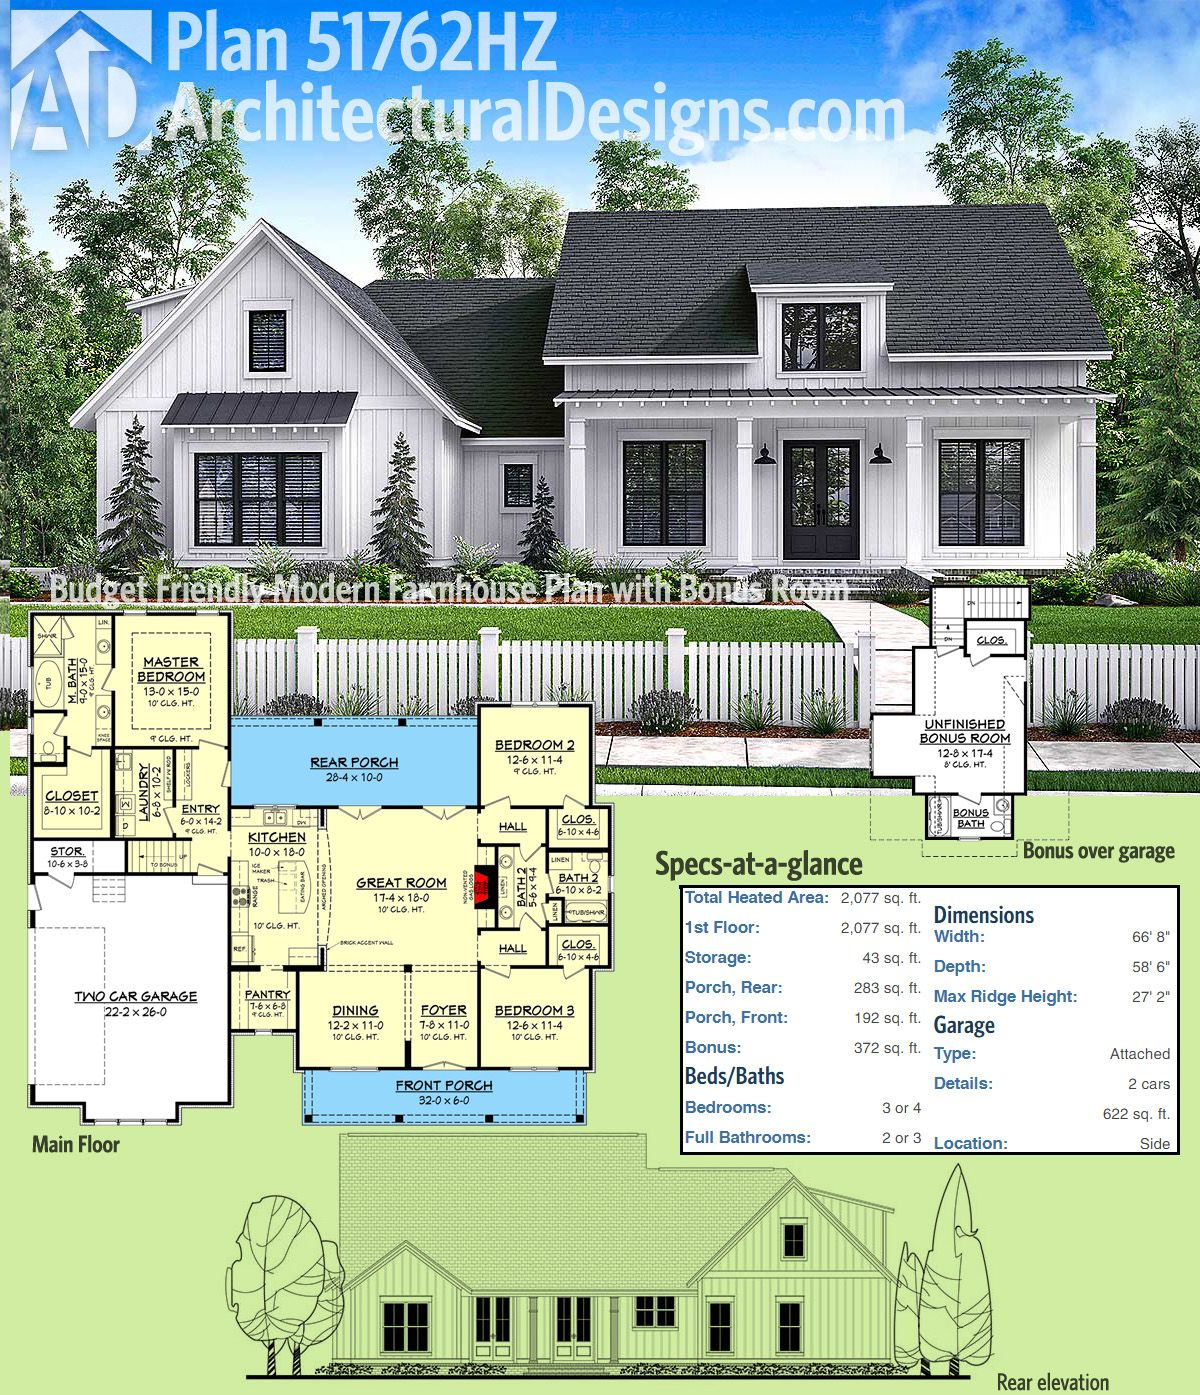 Plan 51762hz budget friendly modern farmhouse plan with for Modern country floor plans